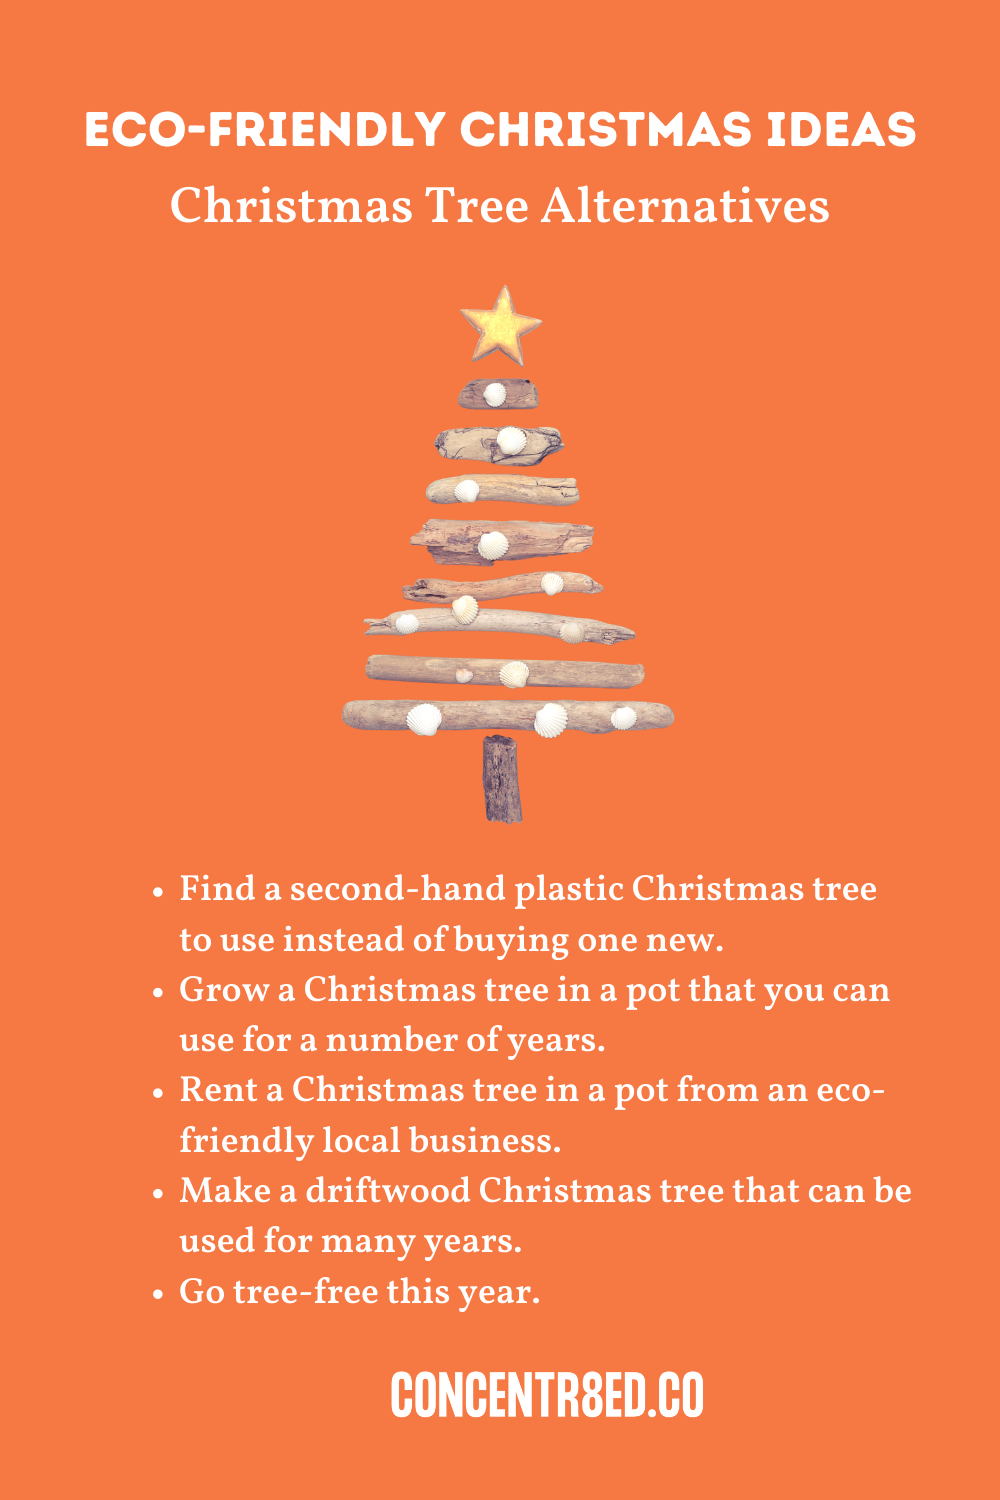 Eco-friendly Christmas ideas real vs fake Christmas trees more sustainable